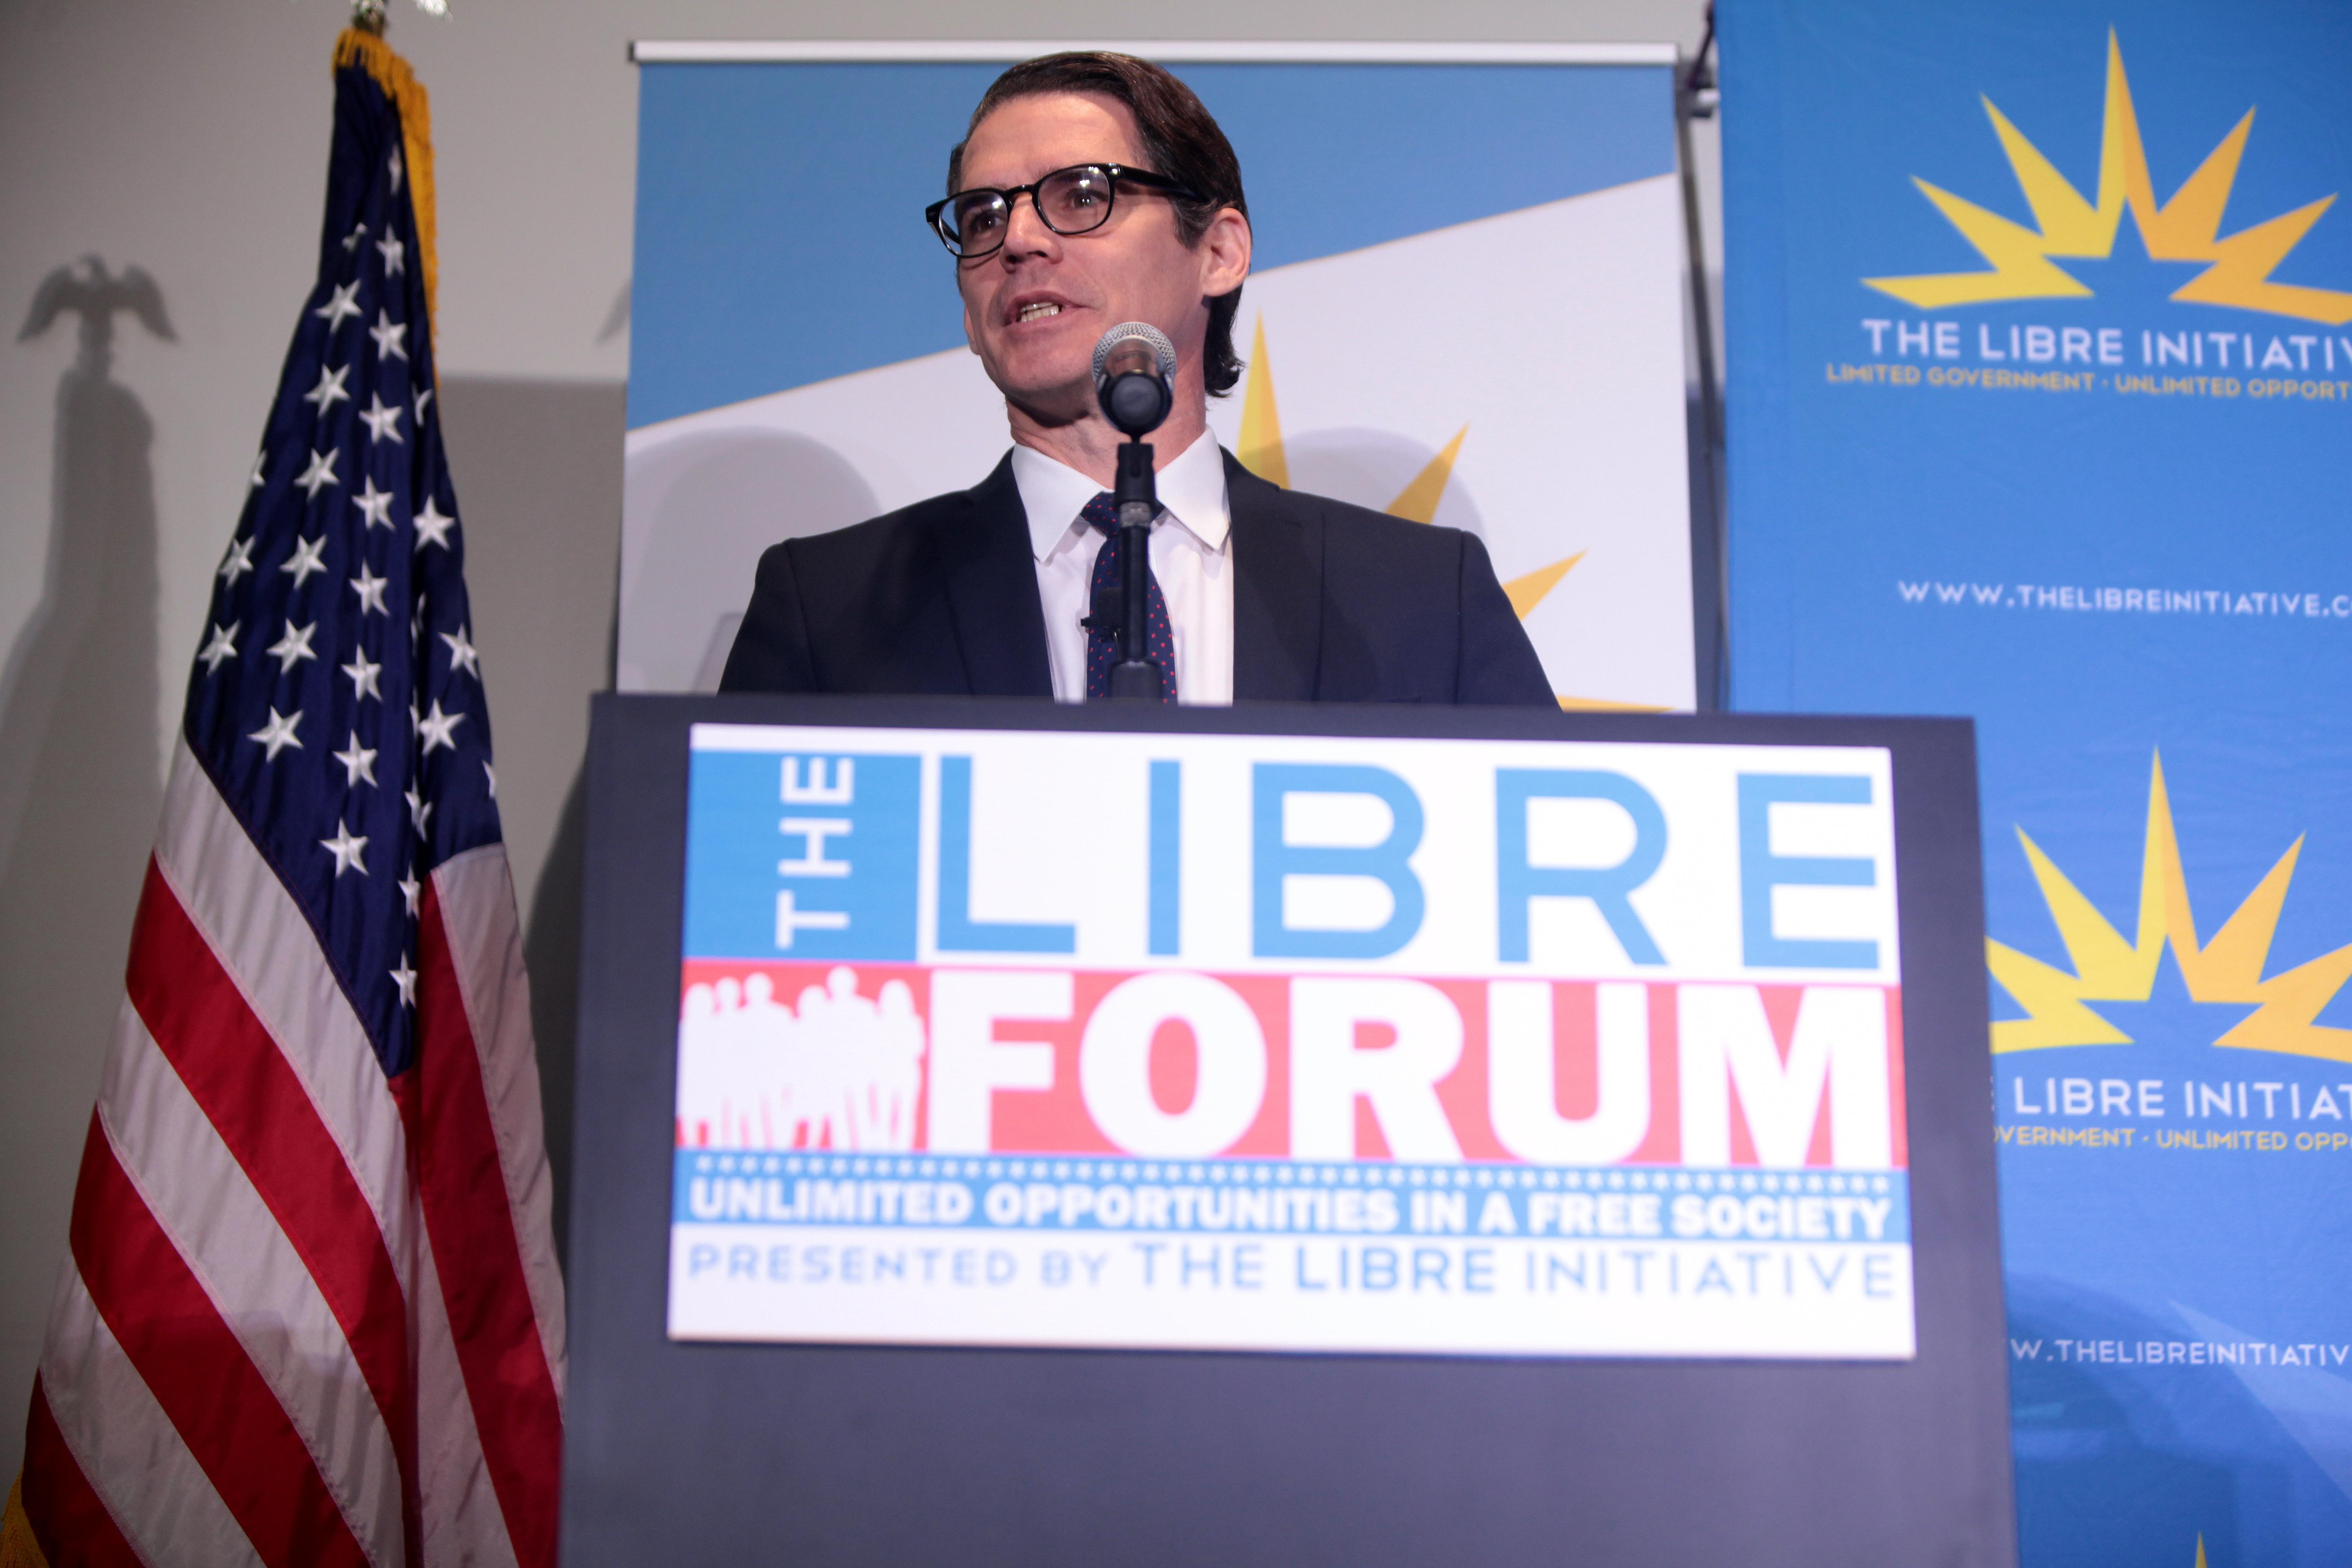 Daniel Garza speaking at a LIBRE Initiative forum in Las Vegas, Nevada, in 2015.